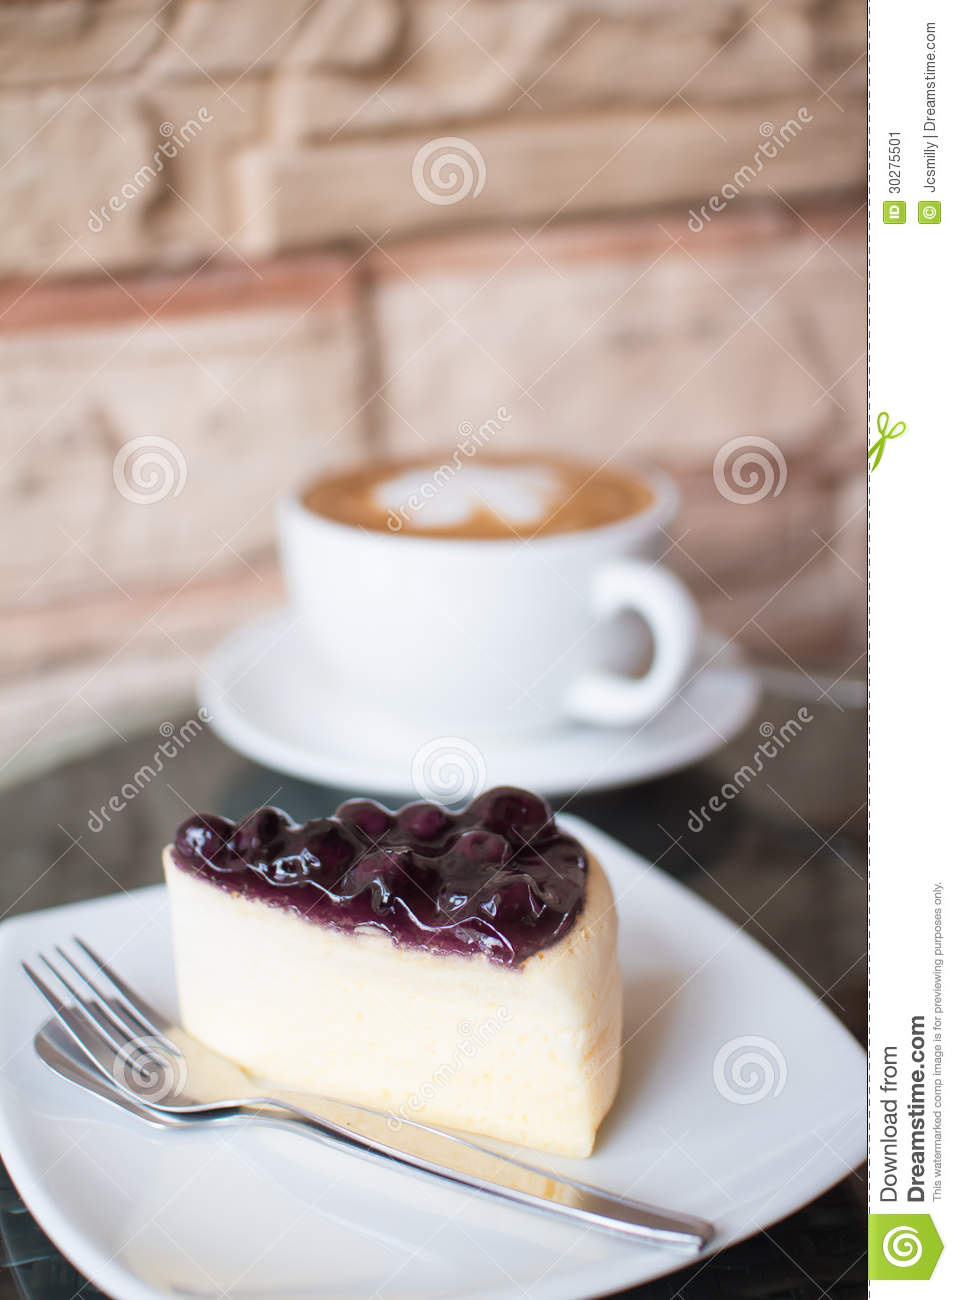 Hot Coffee And Blueberry Cheesecake. Stock Image - Image: 30275501